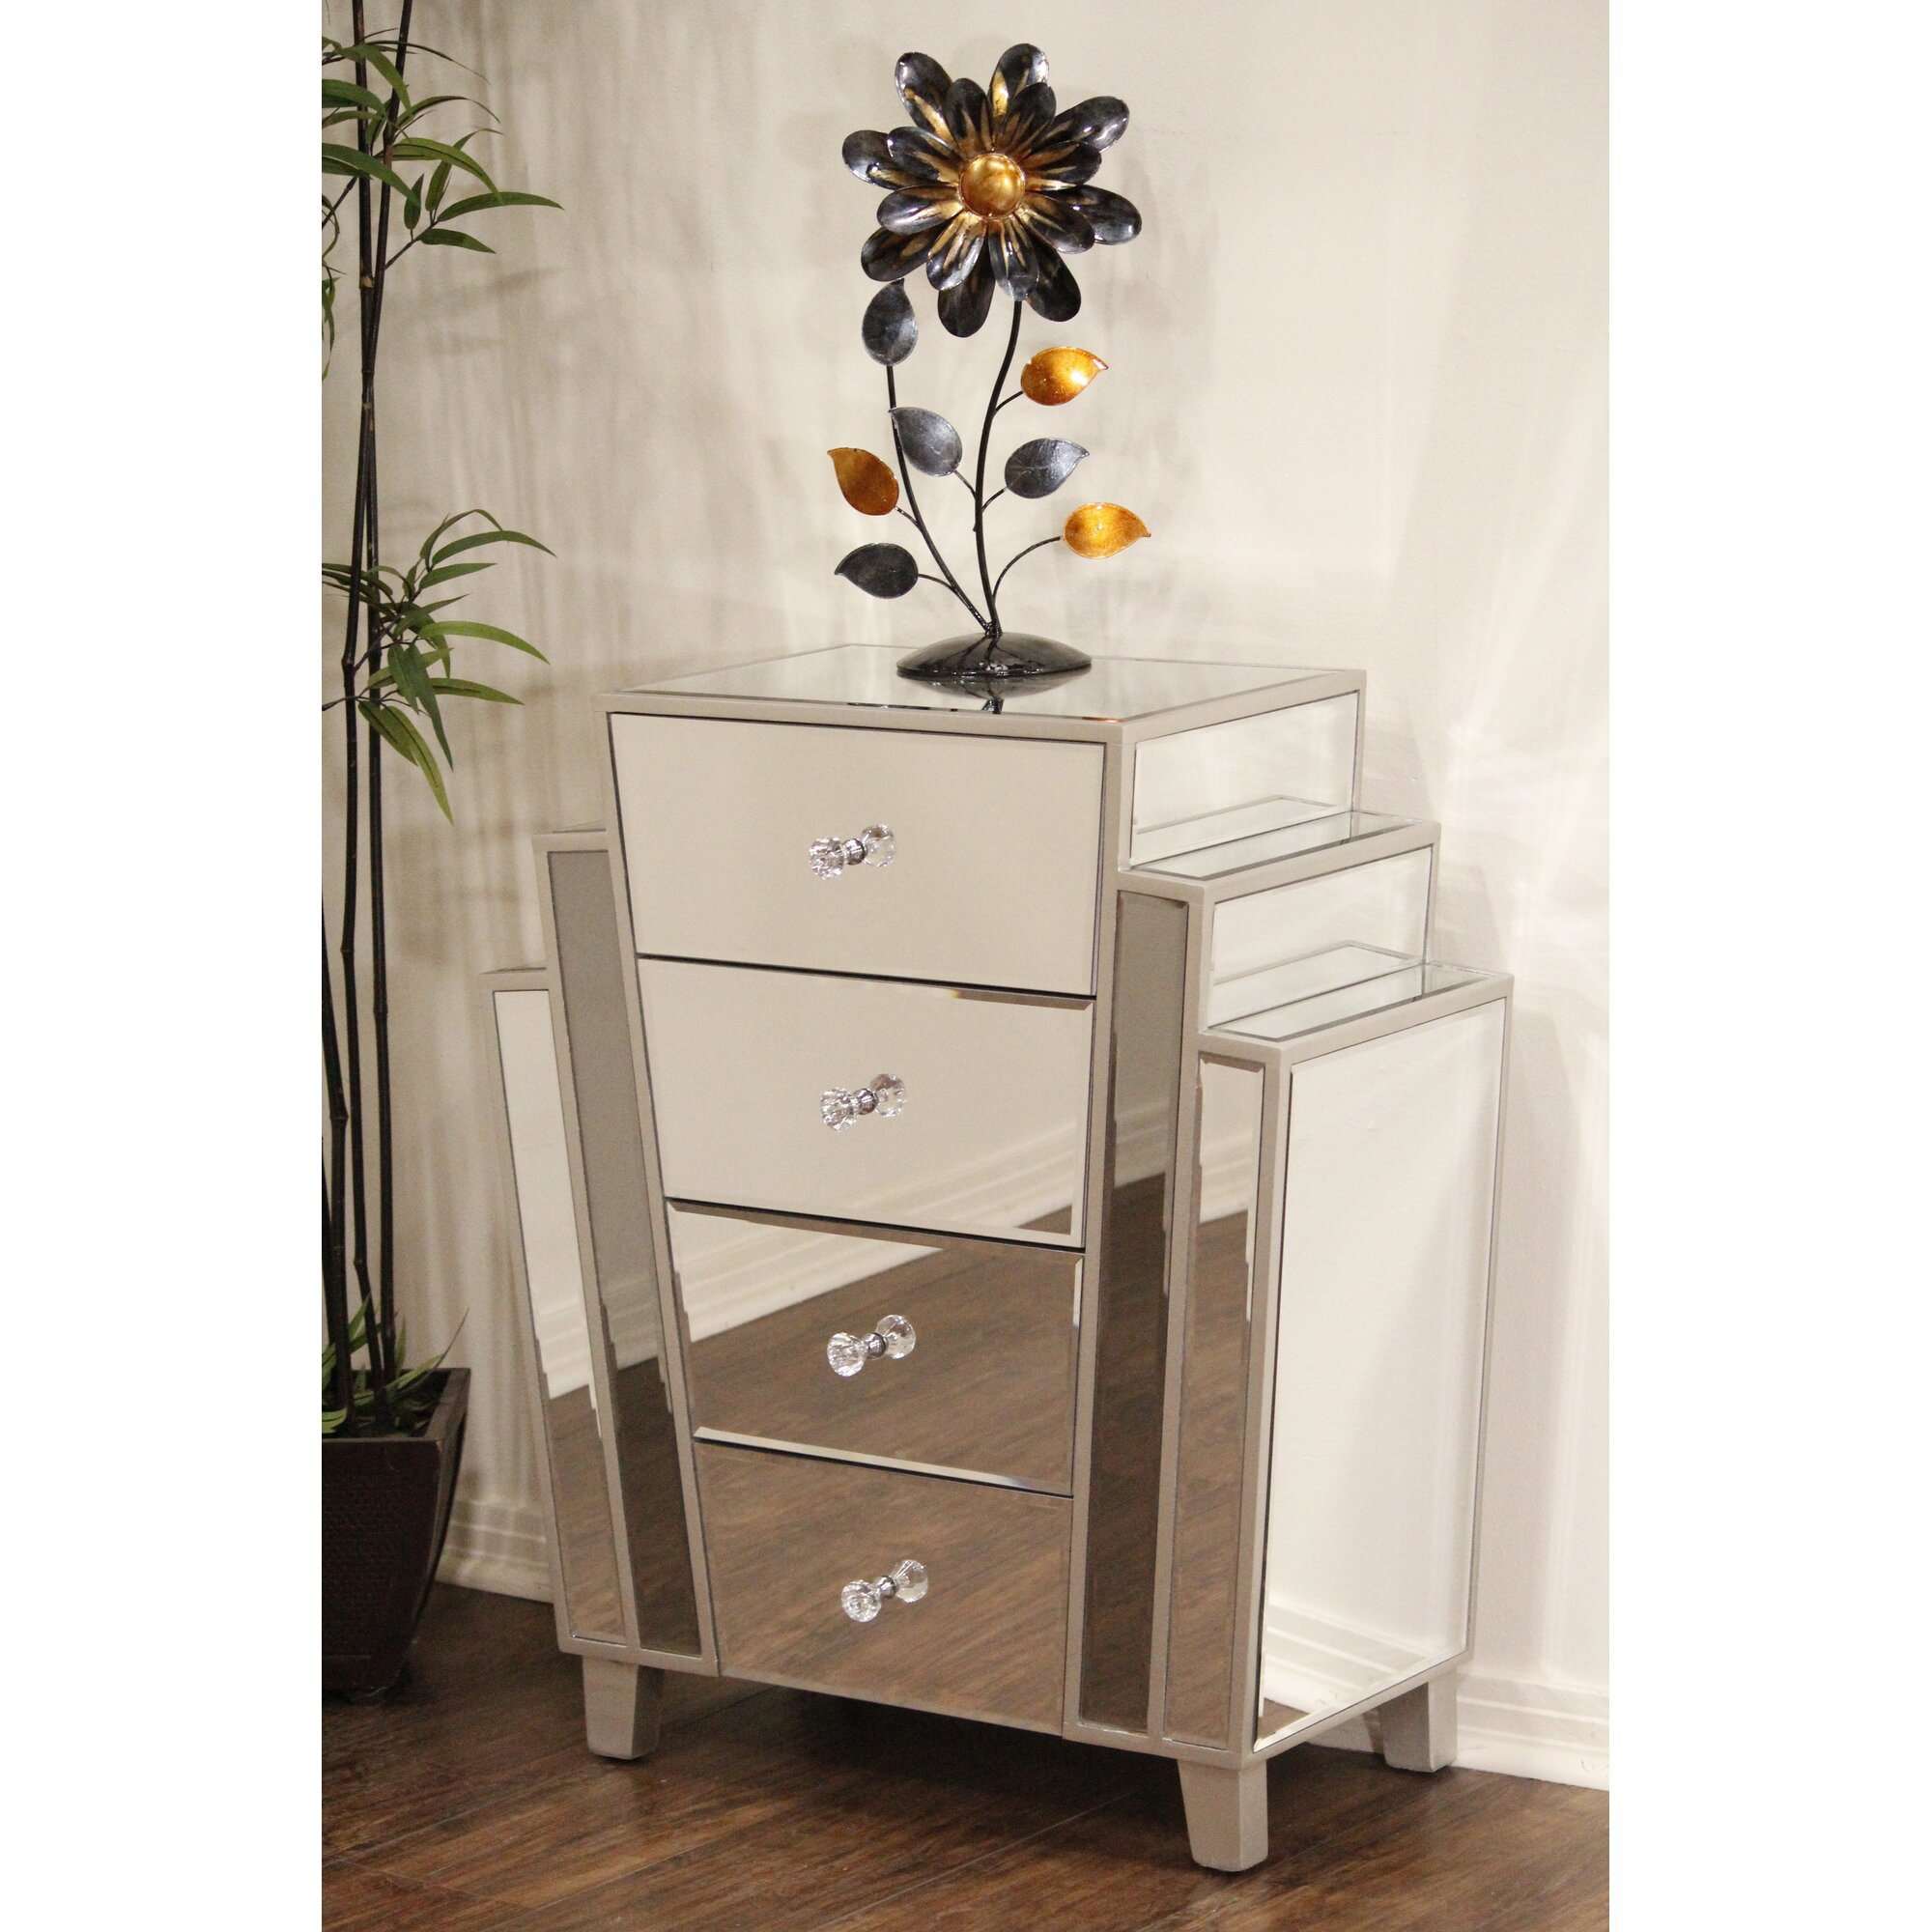 Heather Ann Marquee Art Decor Cabinet & Reviews